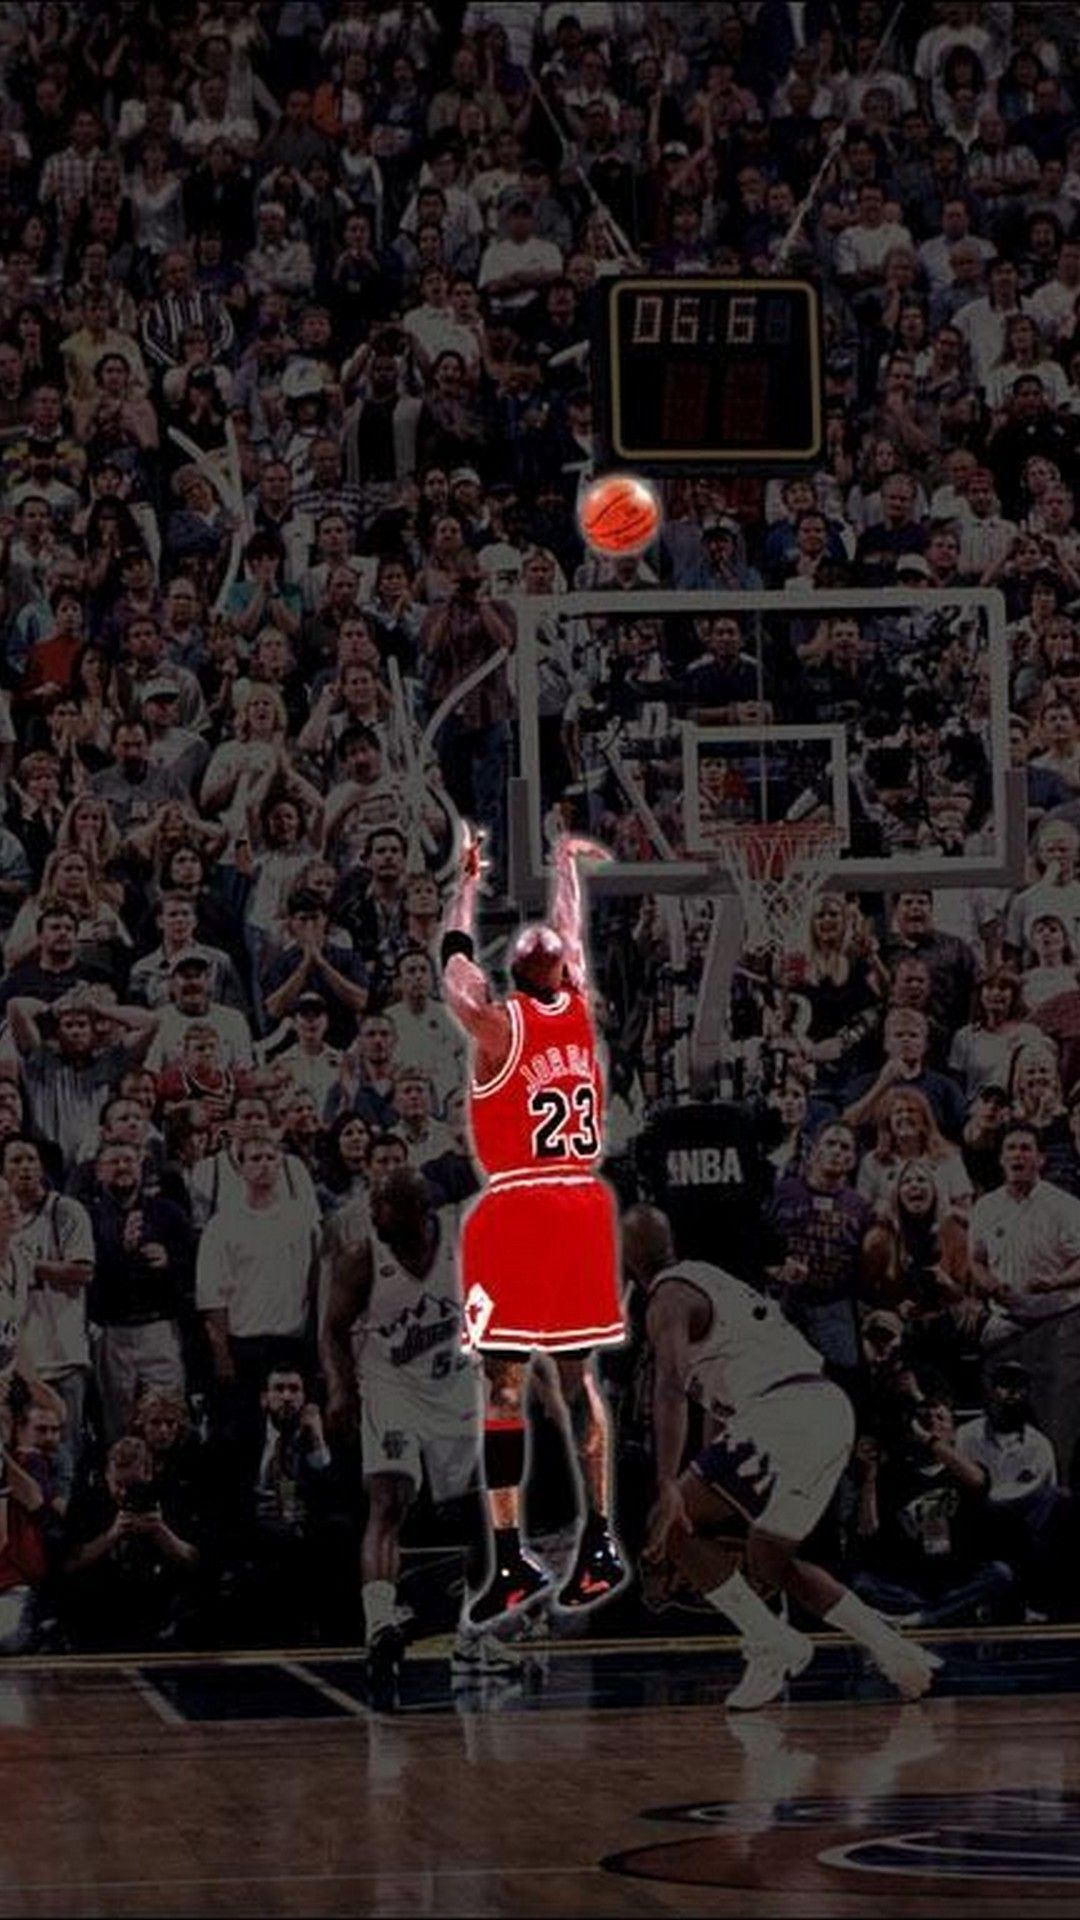 Basketball Wallpaper Best Basketball Wallpapers 2020 Michael Jordan Art Michael Jordan Wallpaper Iphone Basketball Wallpaper